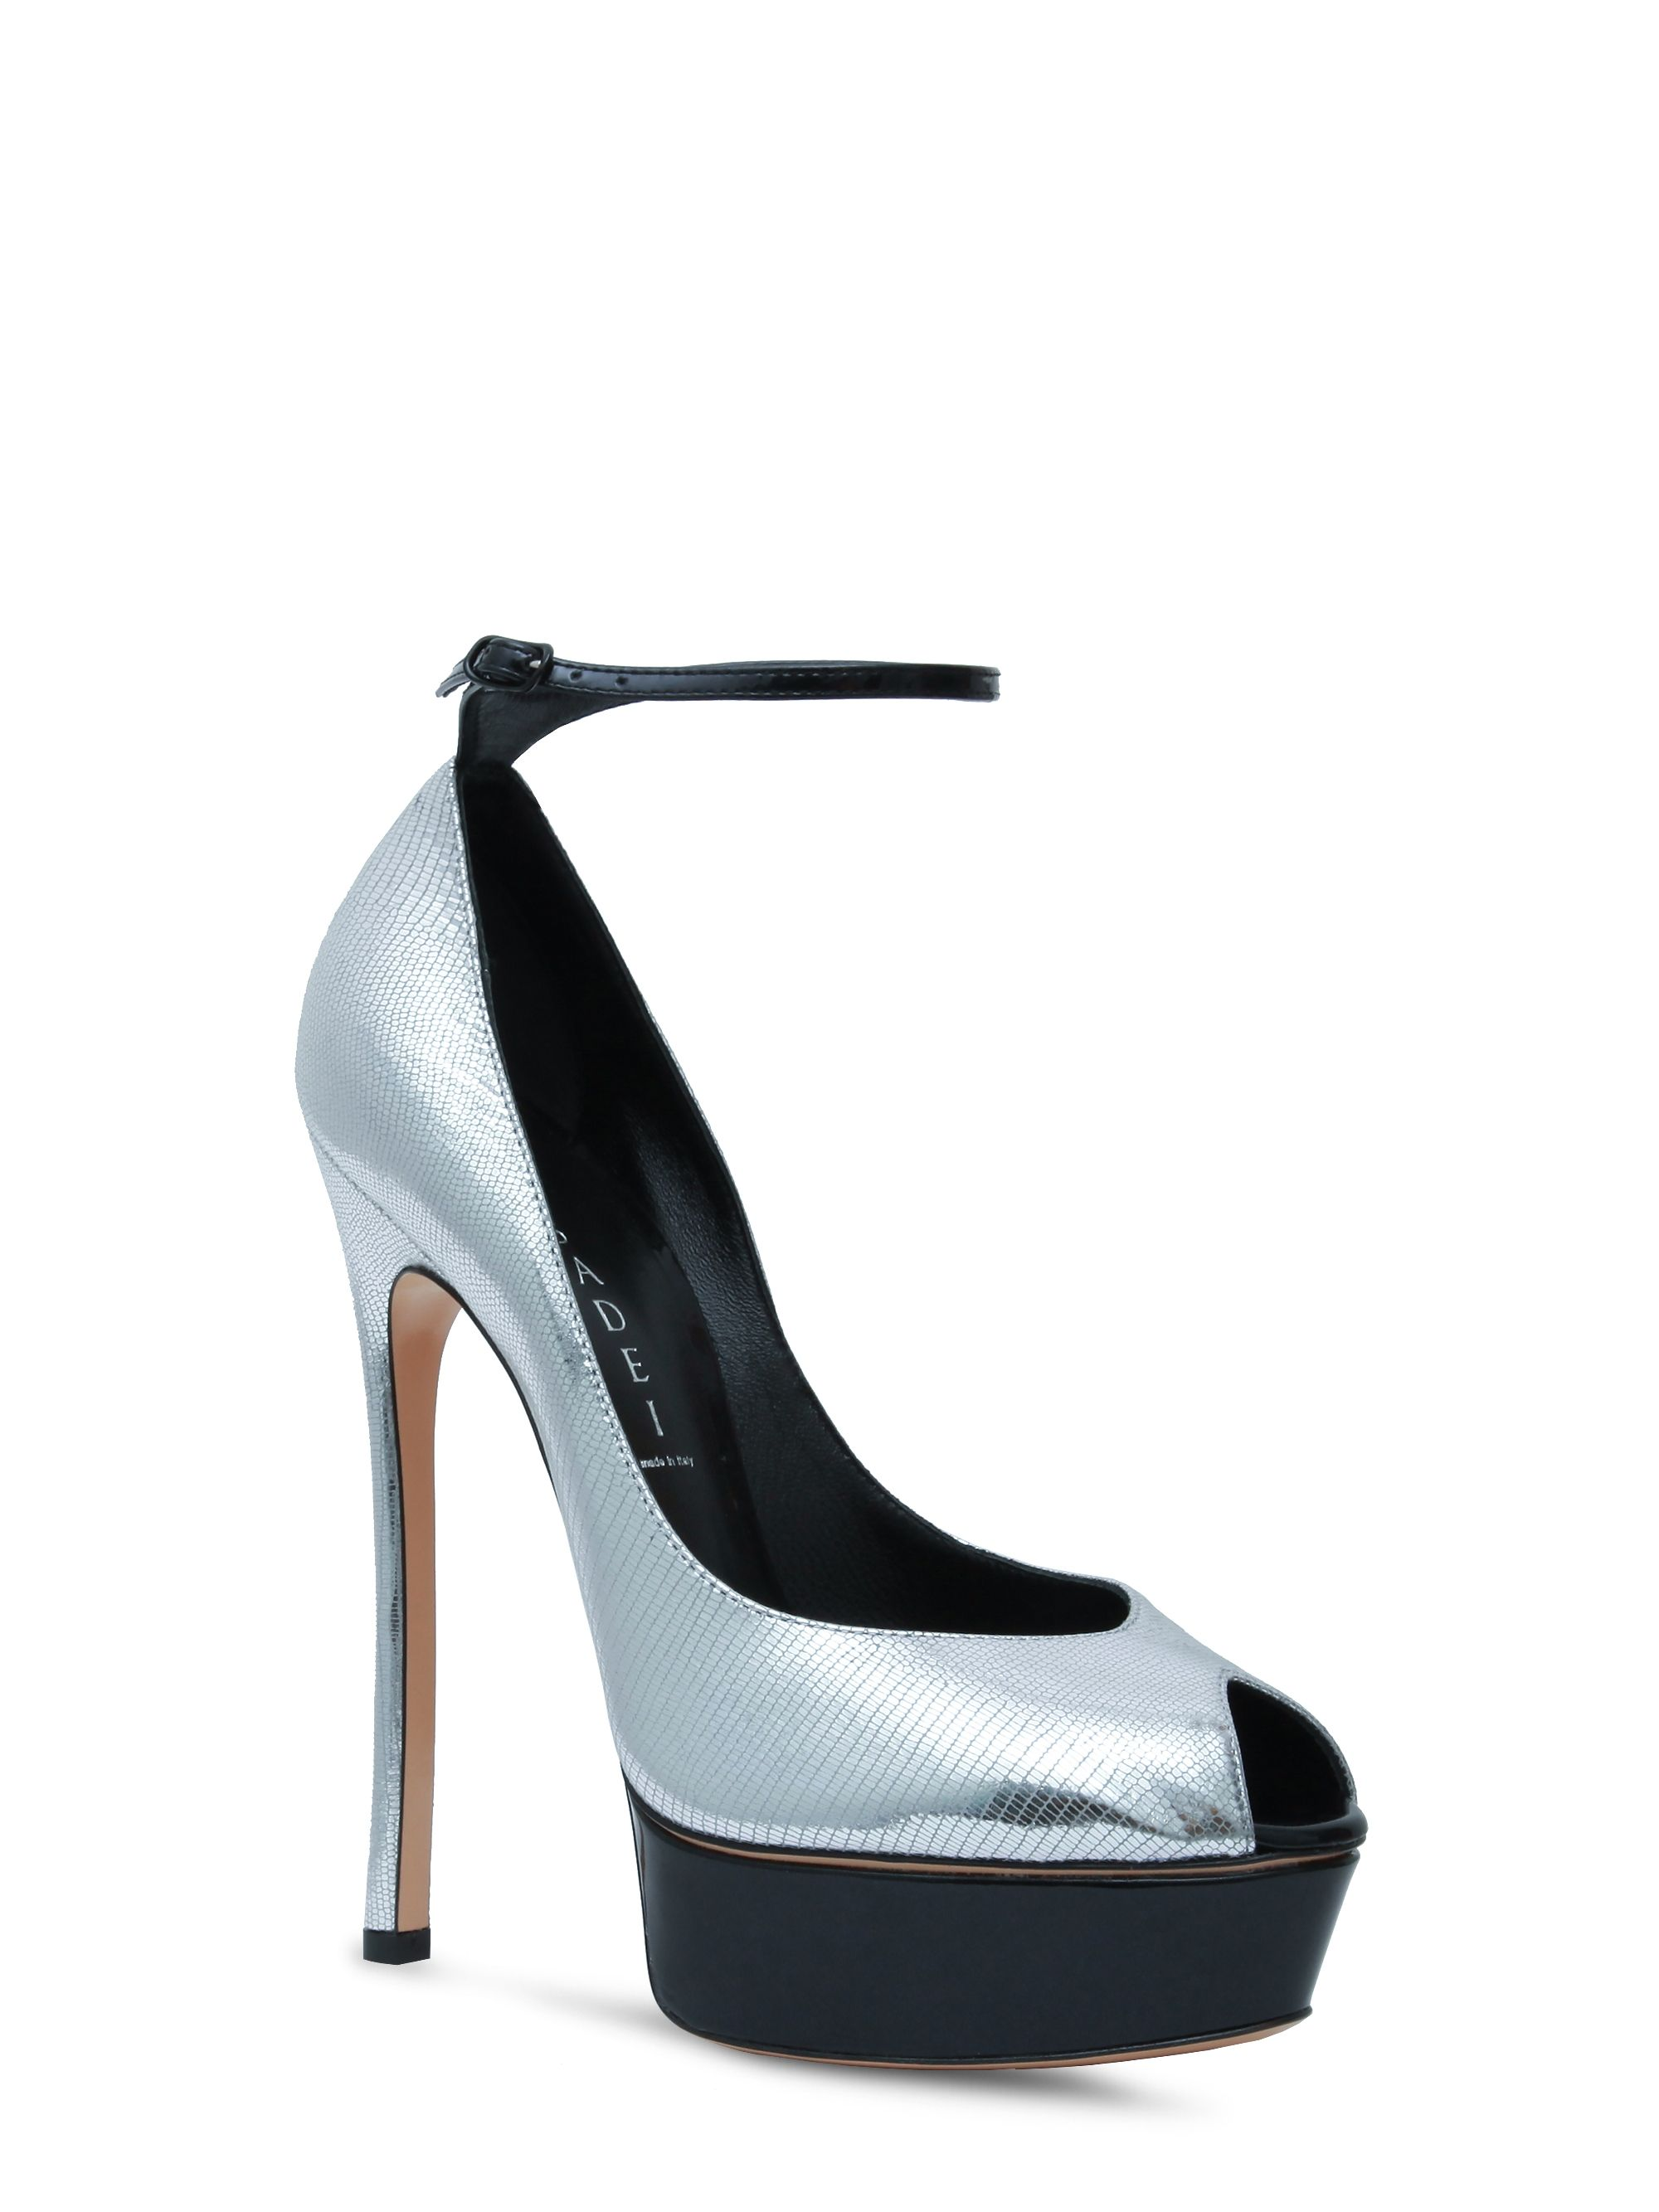 f1b9f58ea59 ... island platform pump in lizard effect silver leather and black glossy  patent leather with buckle fastening ankle strap. Leather covered stiletto  heel.